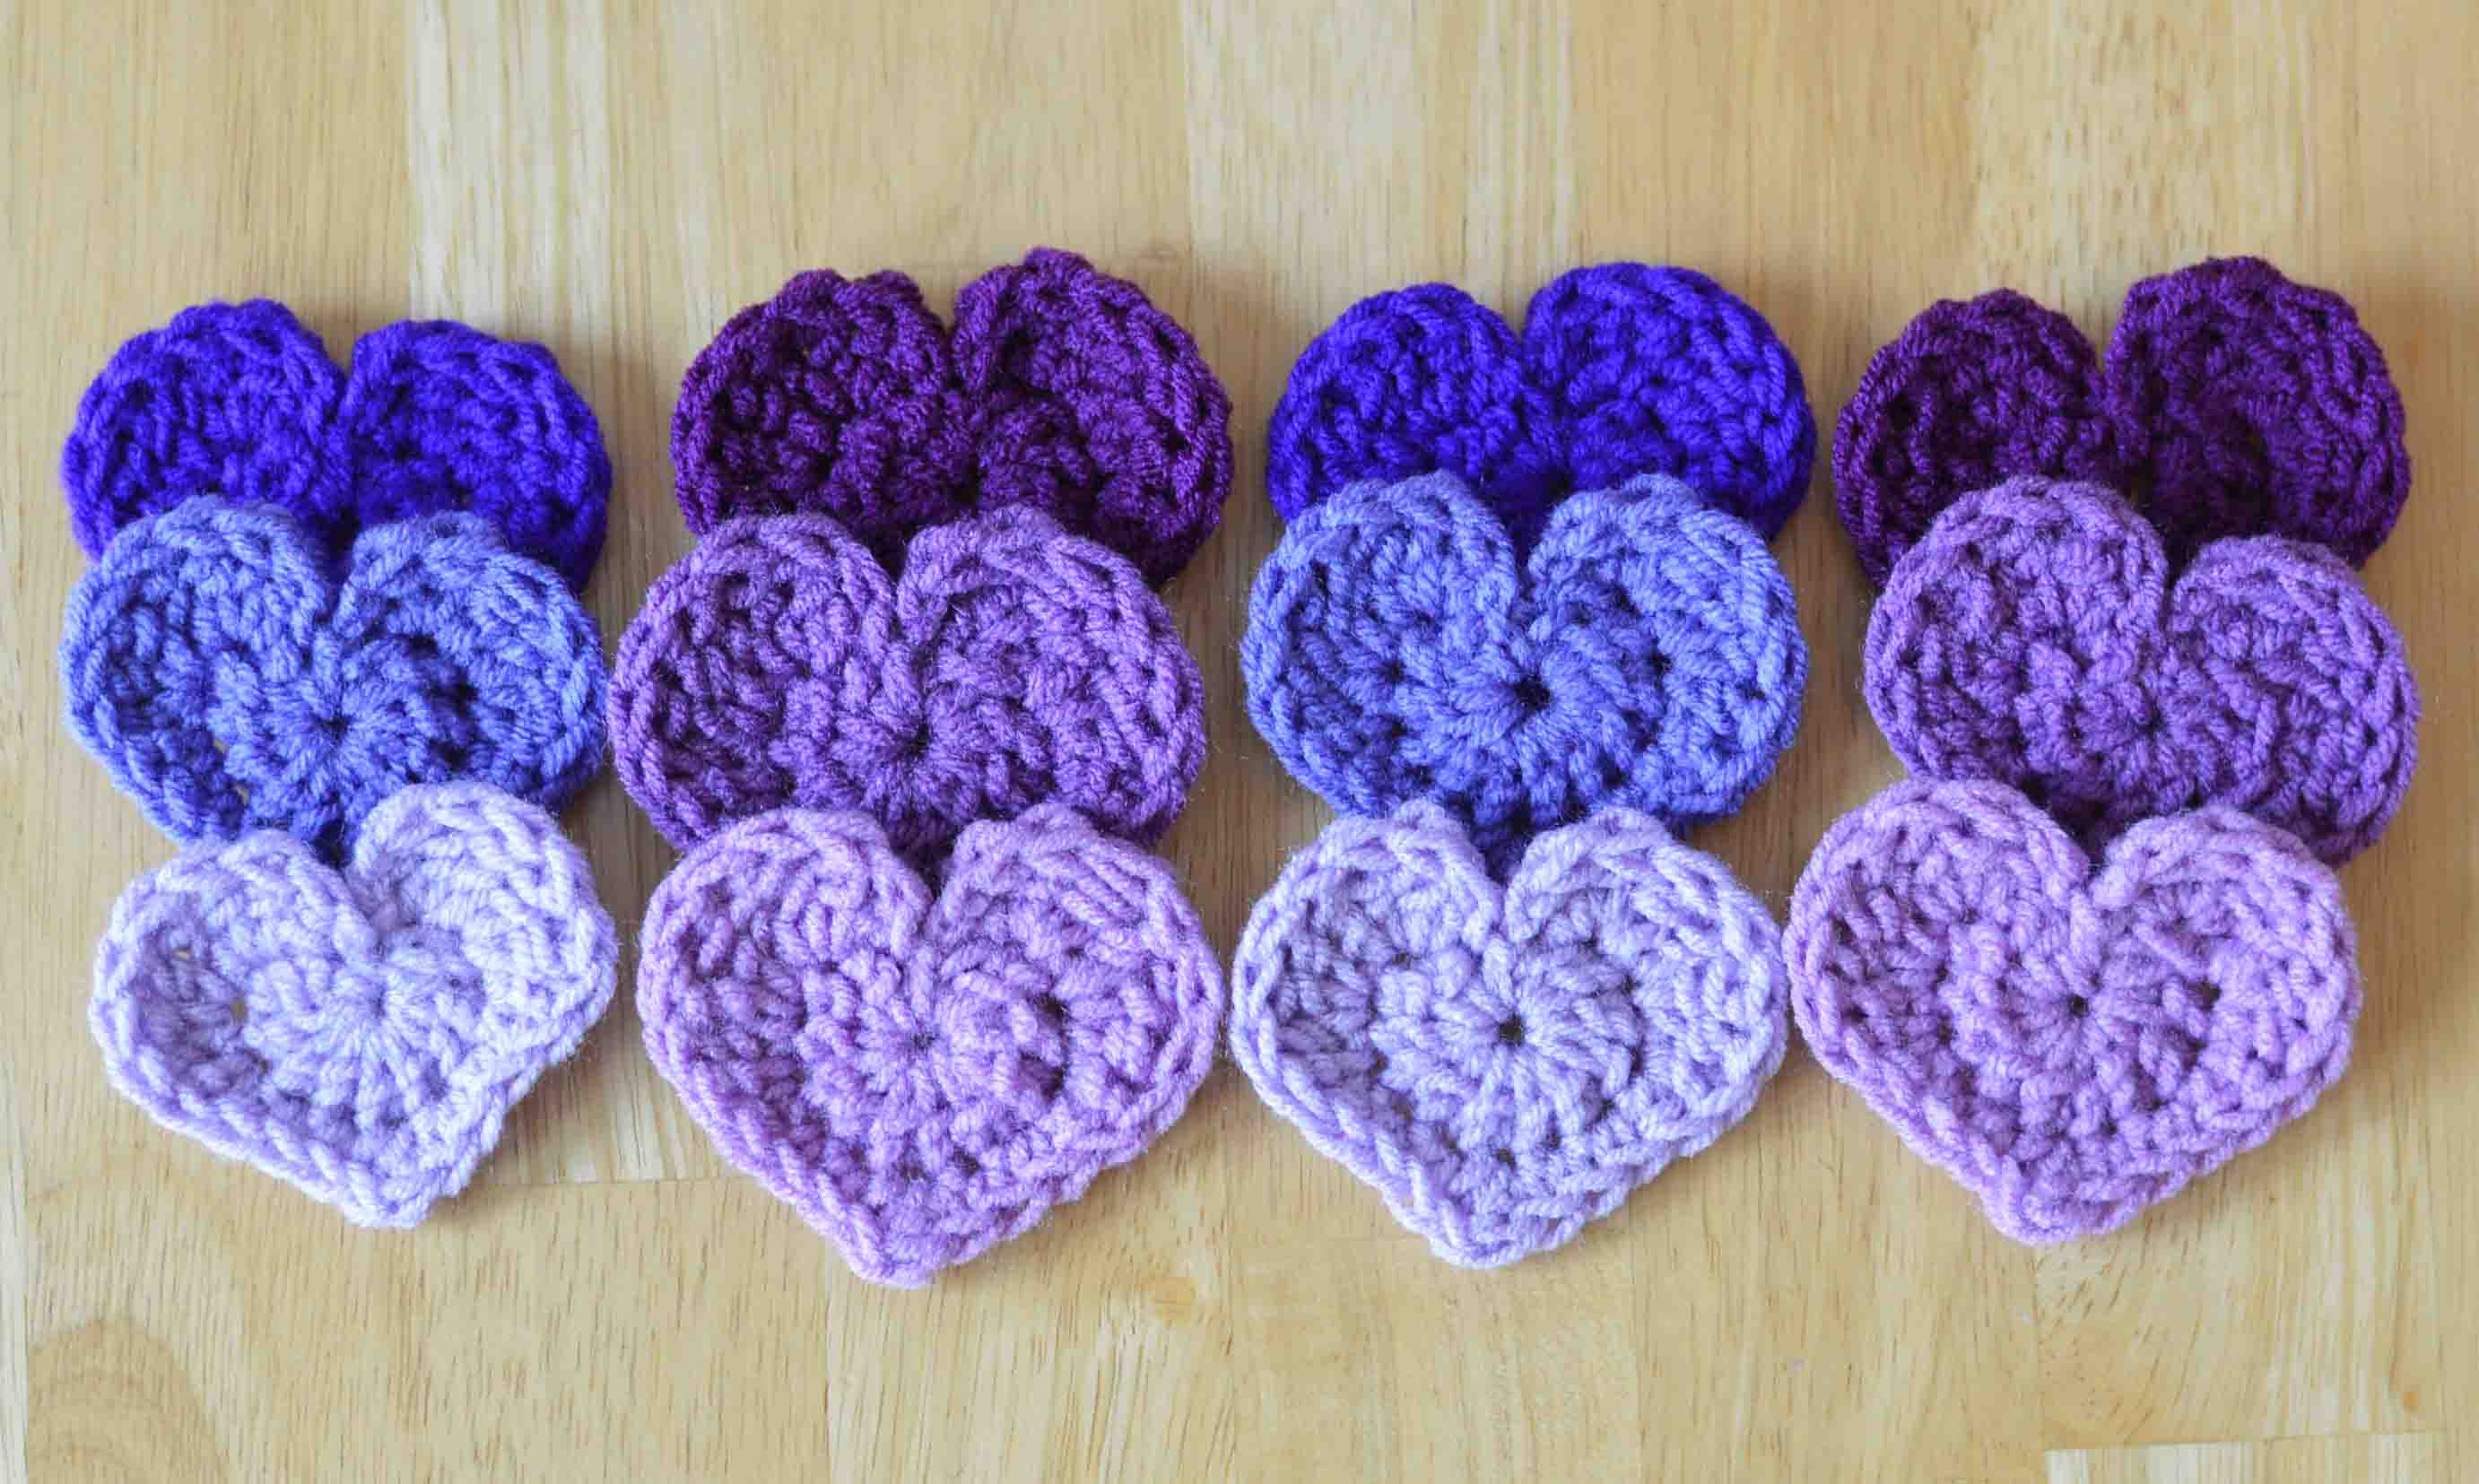 Crochet Patterns Free Red Heart : Cute Little Heart Free Crochet Pattern